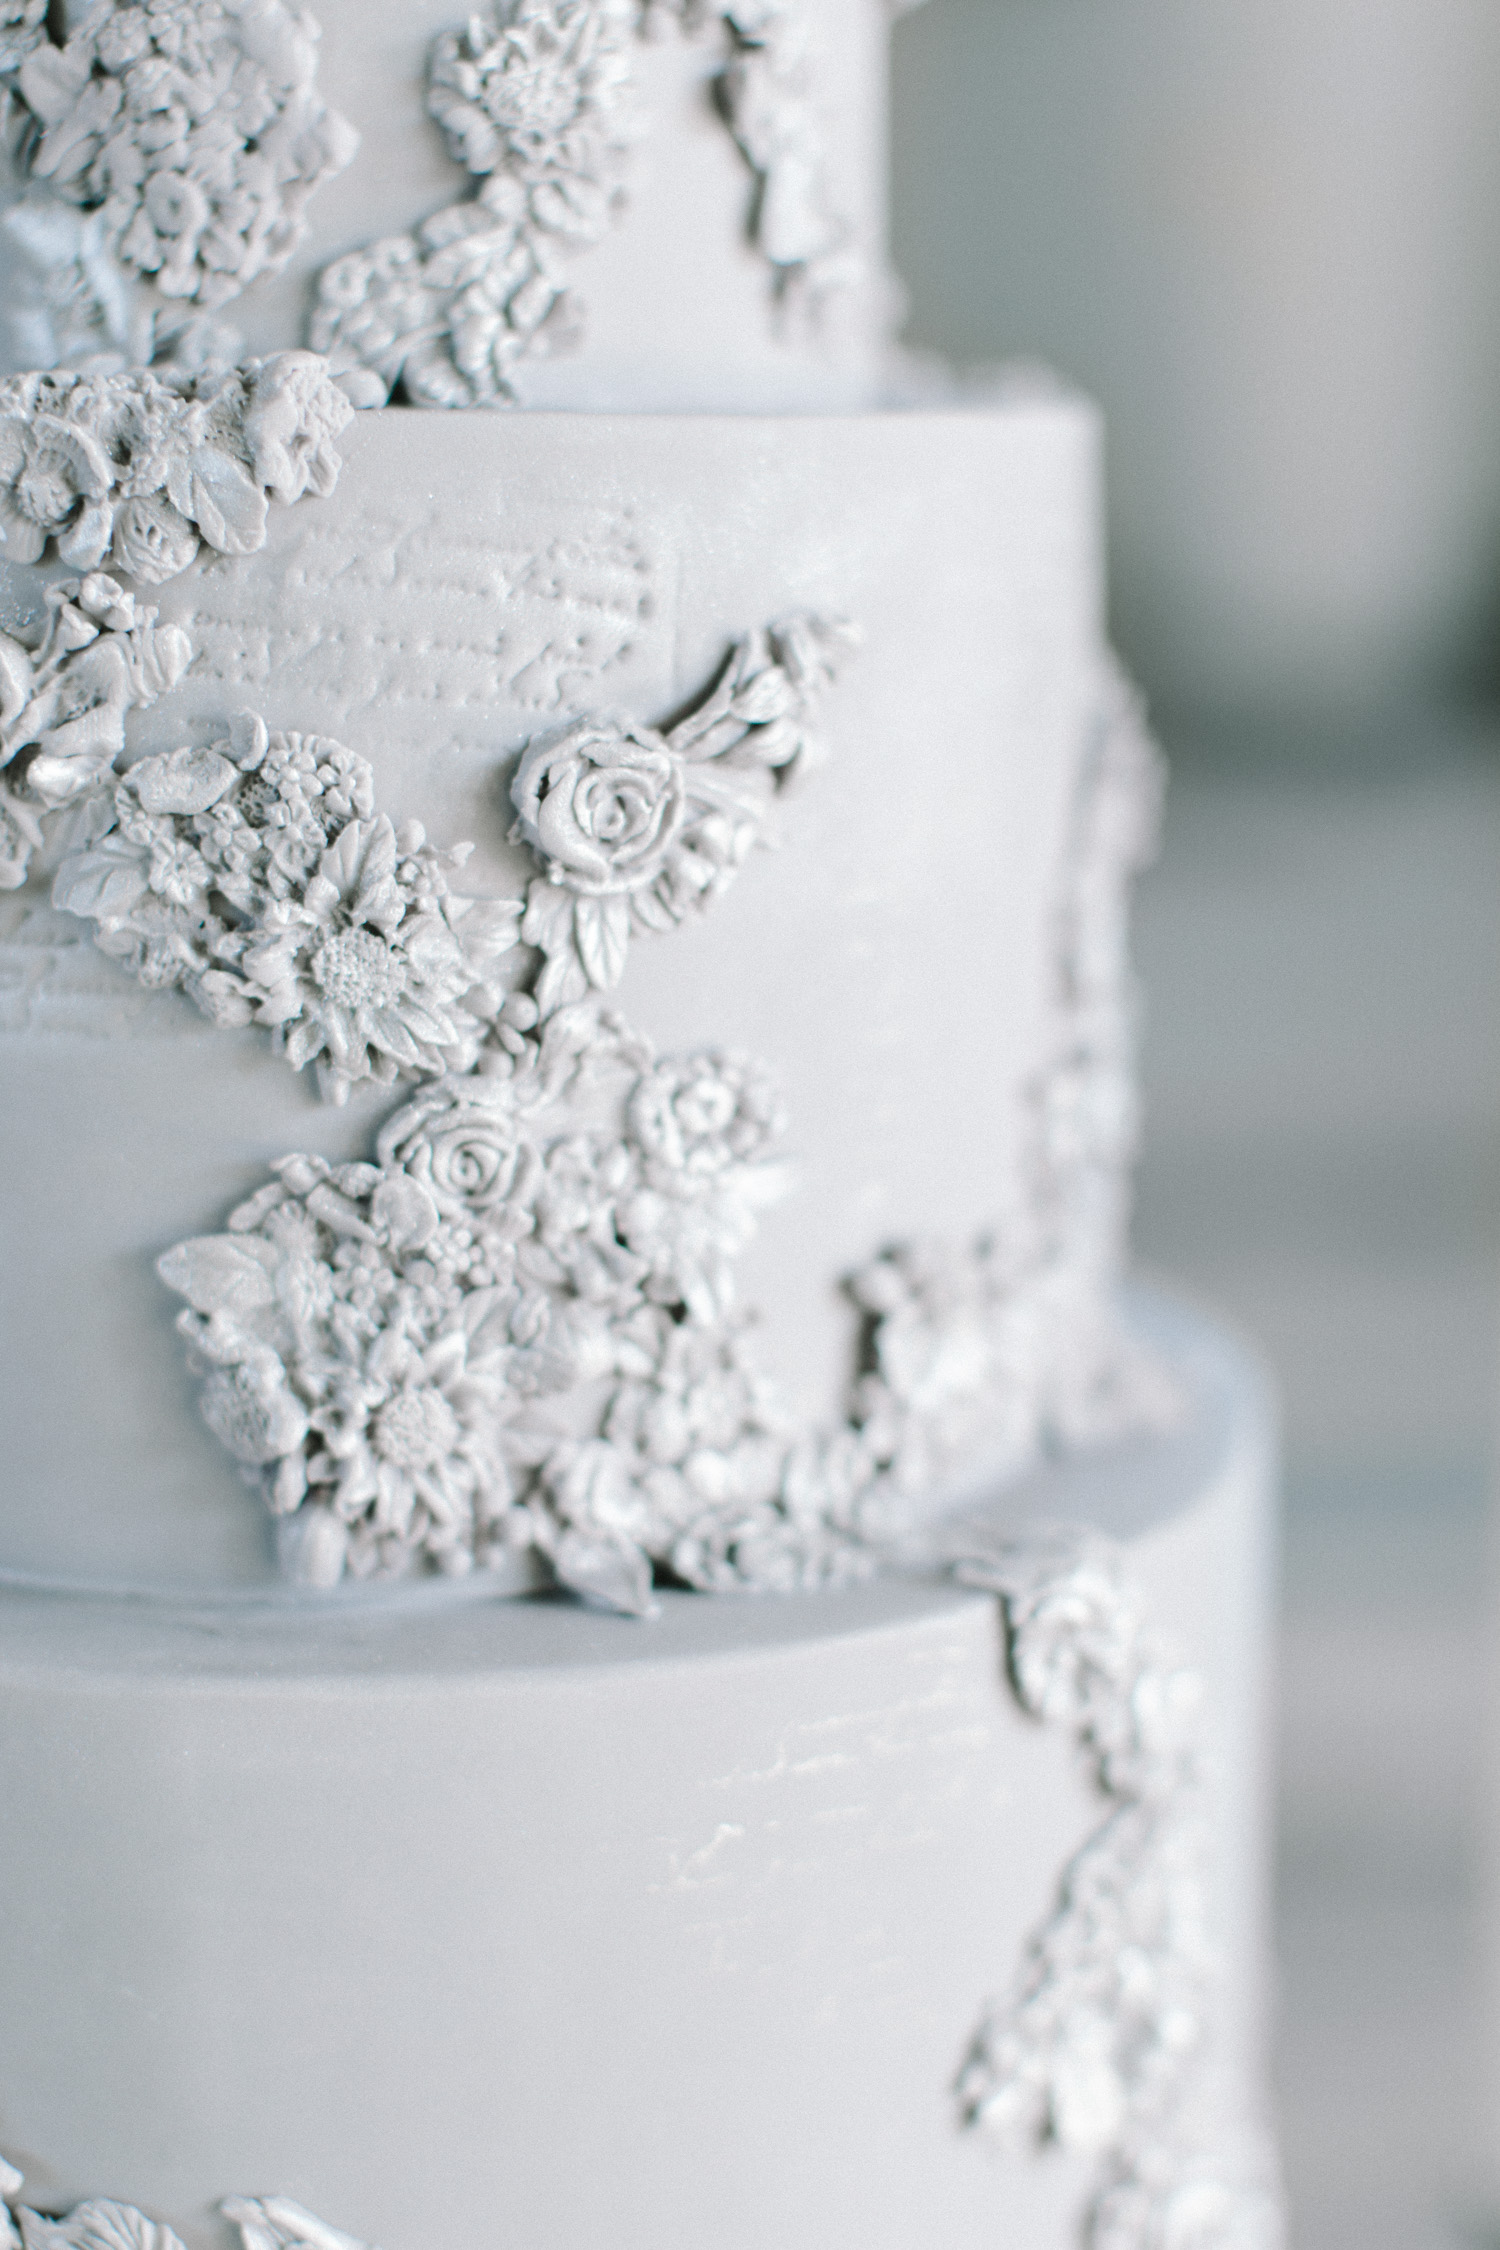 A beautiful silver blue bas relief wedding cake for a Mediterranean destination wedding